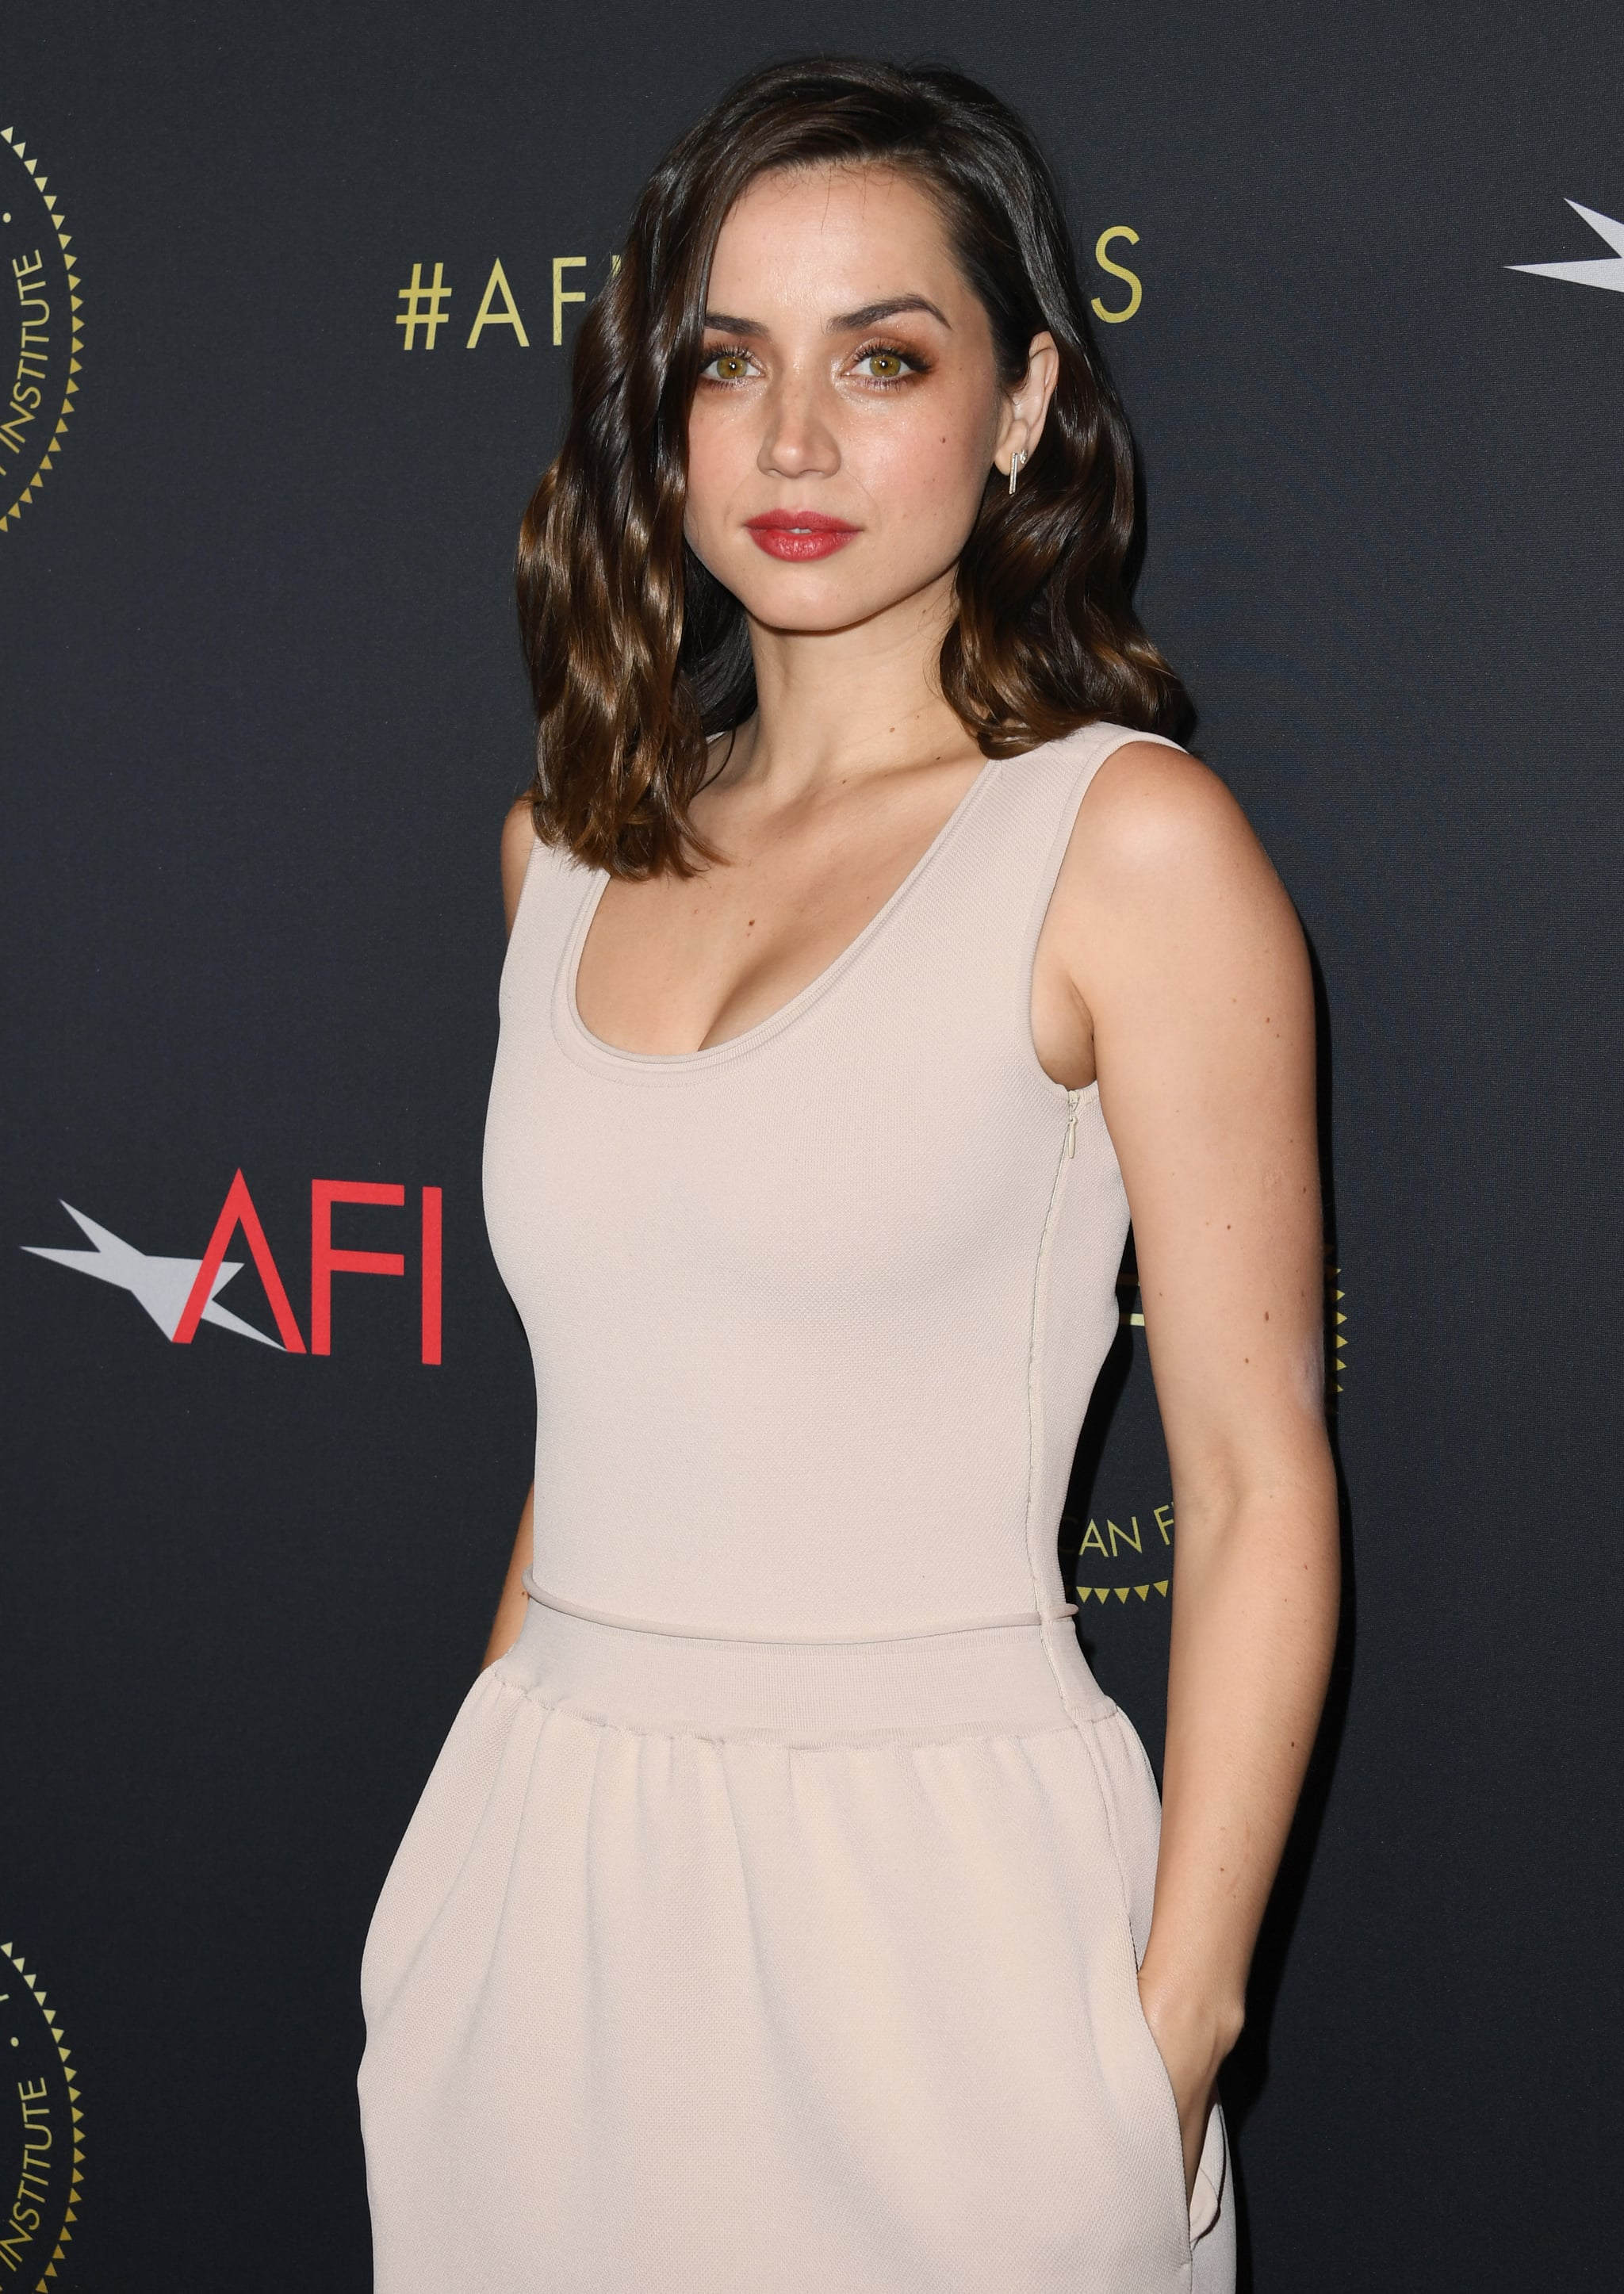 LOS ANGELES, CALIFORNIA - JANUARY 03:  Ana de Armas attends the 20th Annual AFI Awards at Four Seasons Hotel Los Angeles at Beverly Hills on January 03, 2020 in Los Angeles, California. (Photo by Jon Kopaloff/FilmMagic)